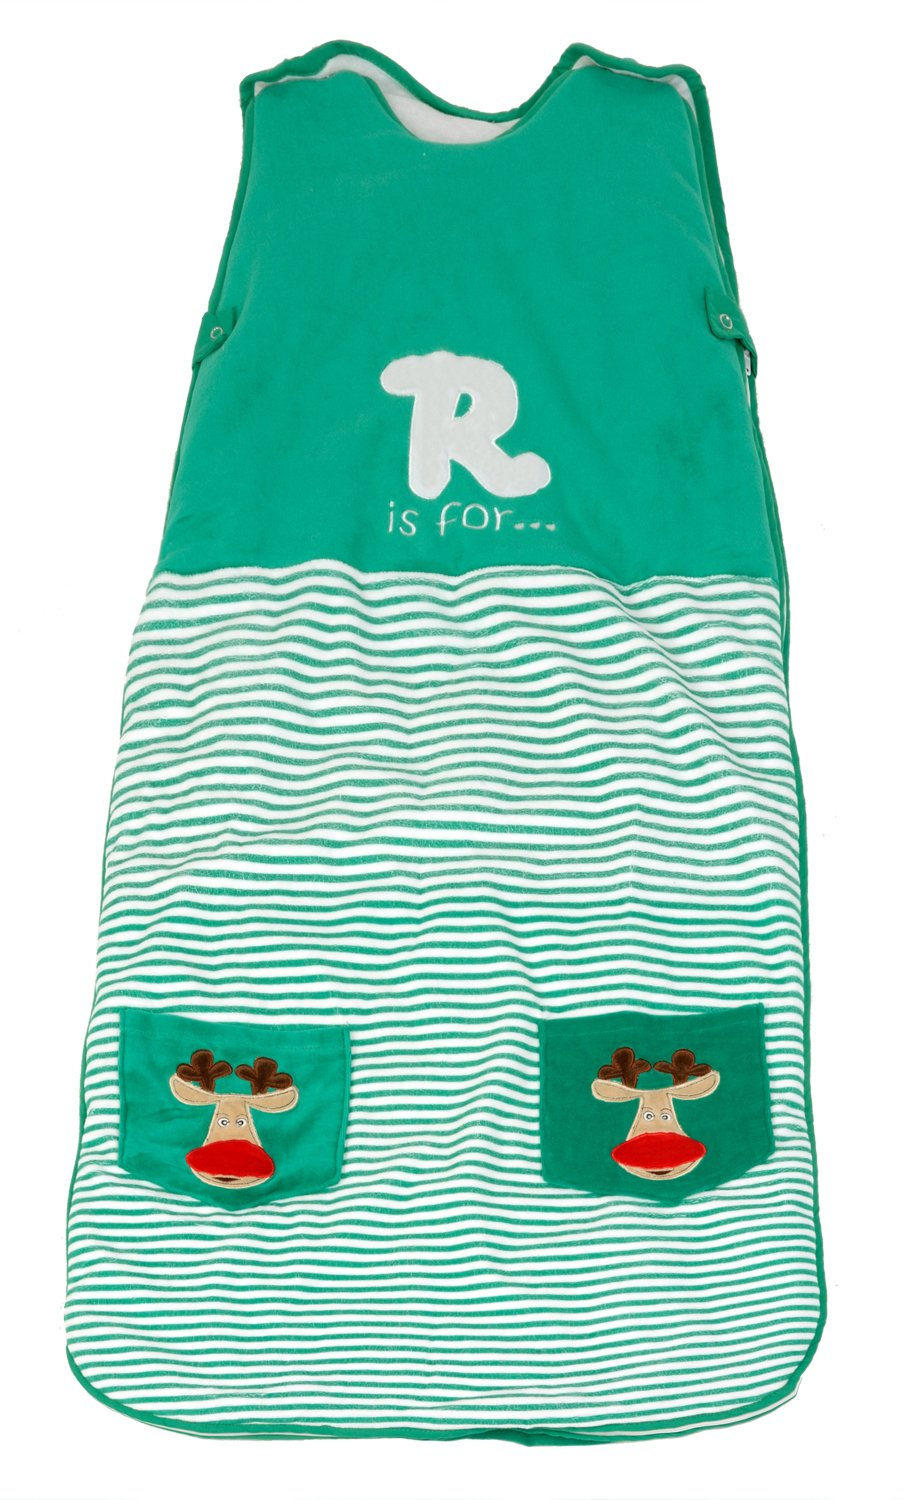 Black Friday-Cyber Monday Special - The Dream Bag Baby Sleeping Bag Velour Reindeer 6-18 Months 2.5 TOG - Green